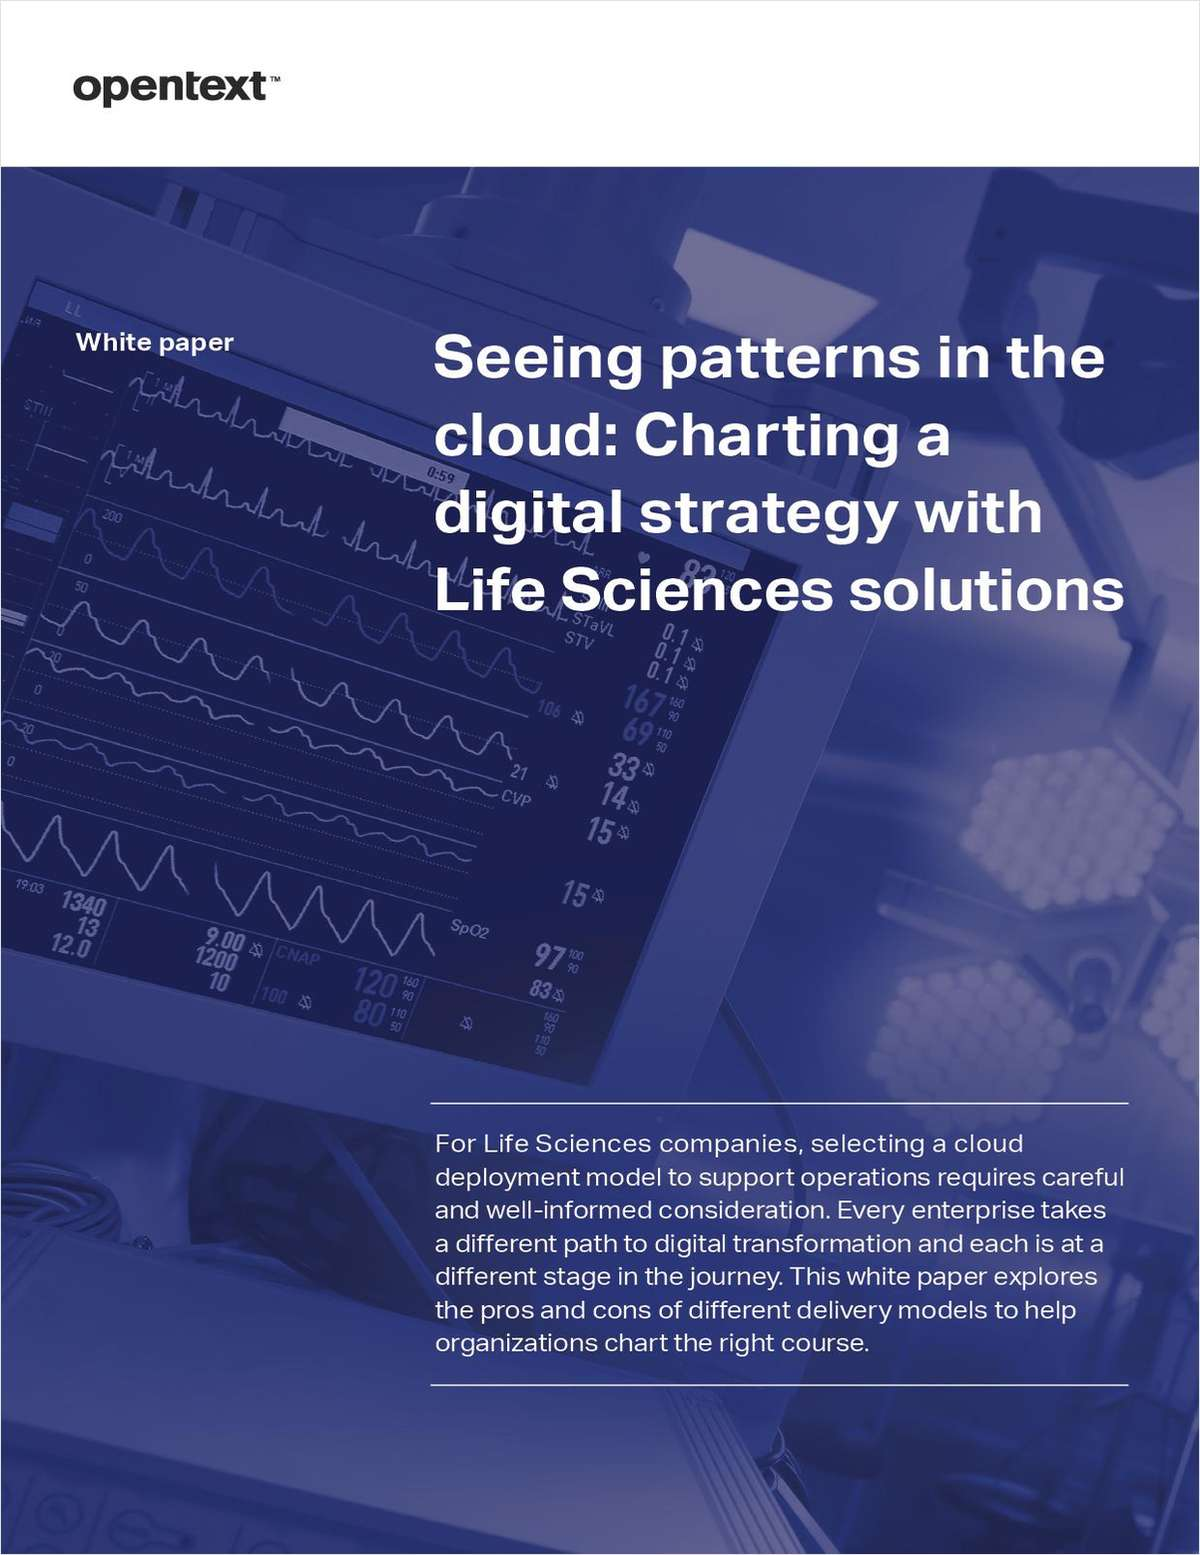 Seeing patterns in the cloud: Charting a digital strategy with Life Sciences solutions